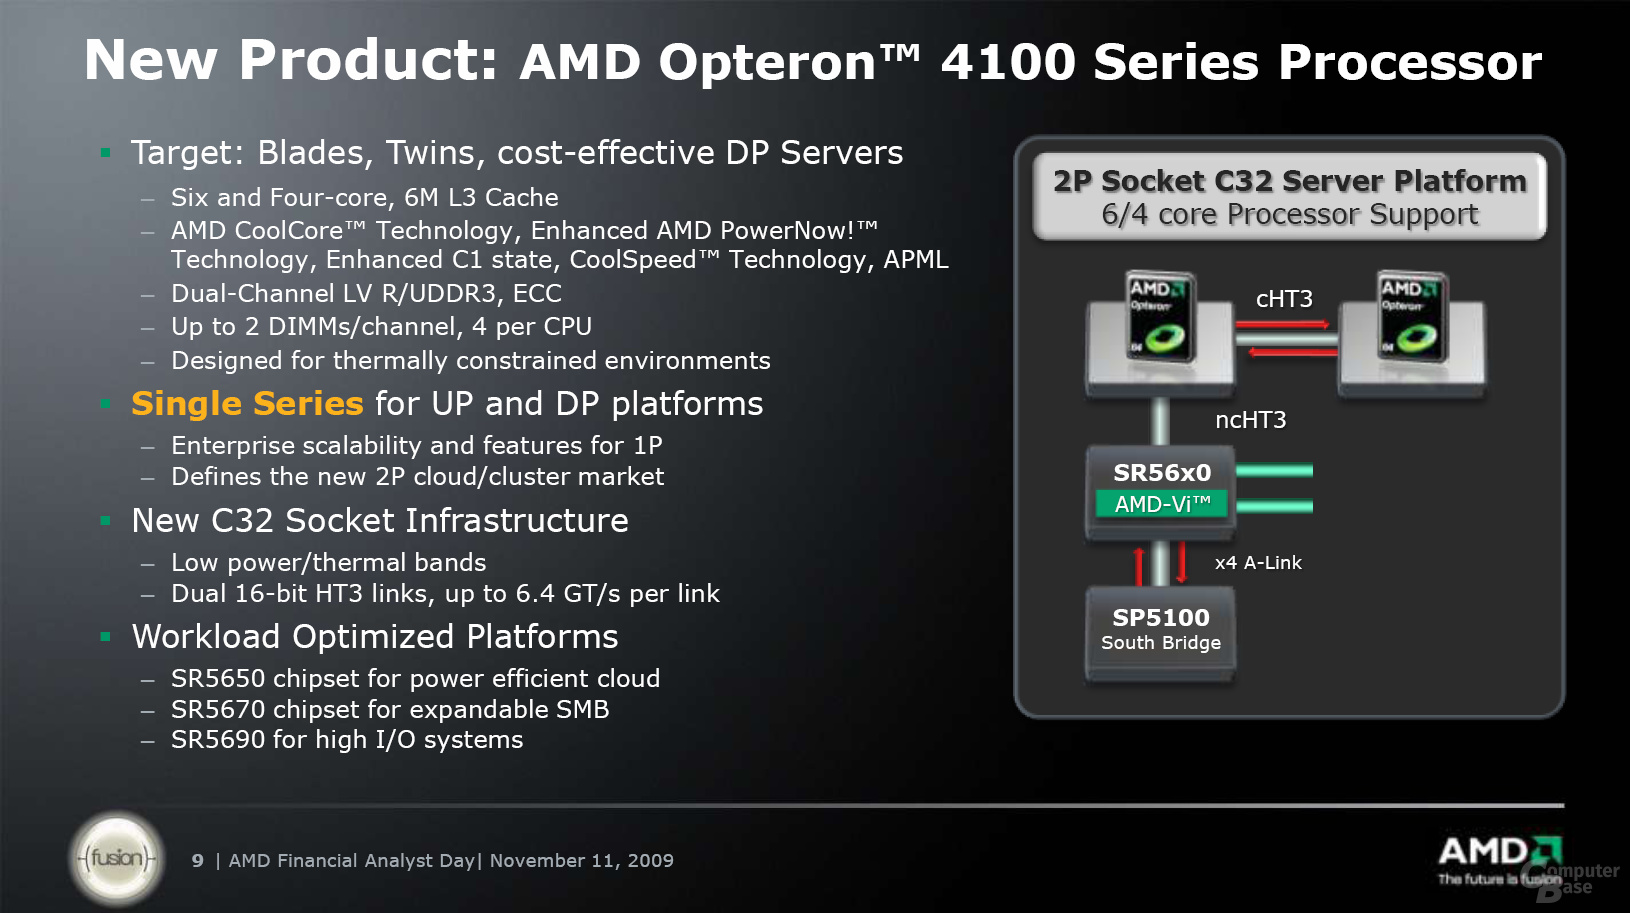 AMD Opteron 4100 Series